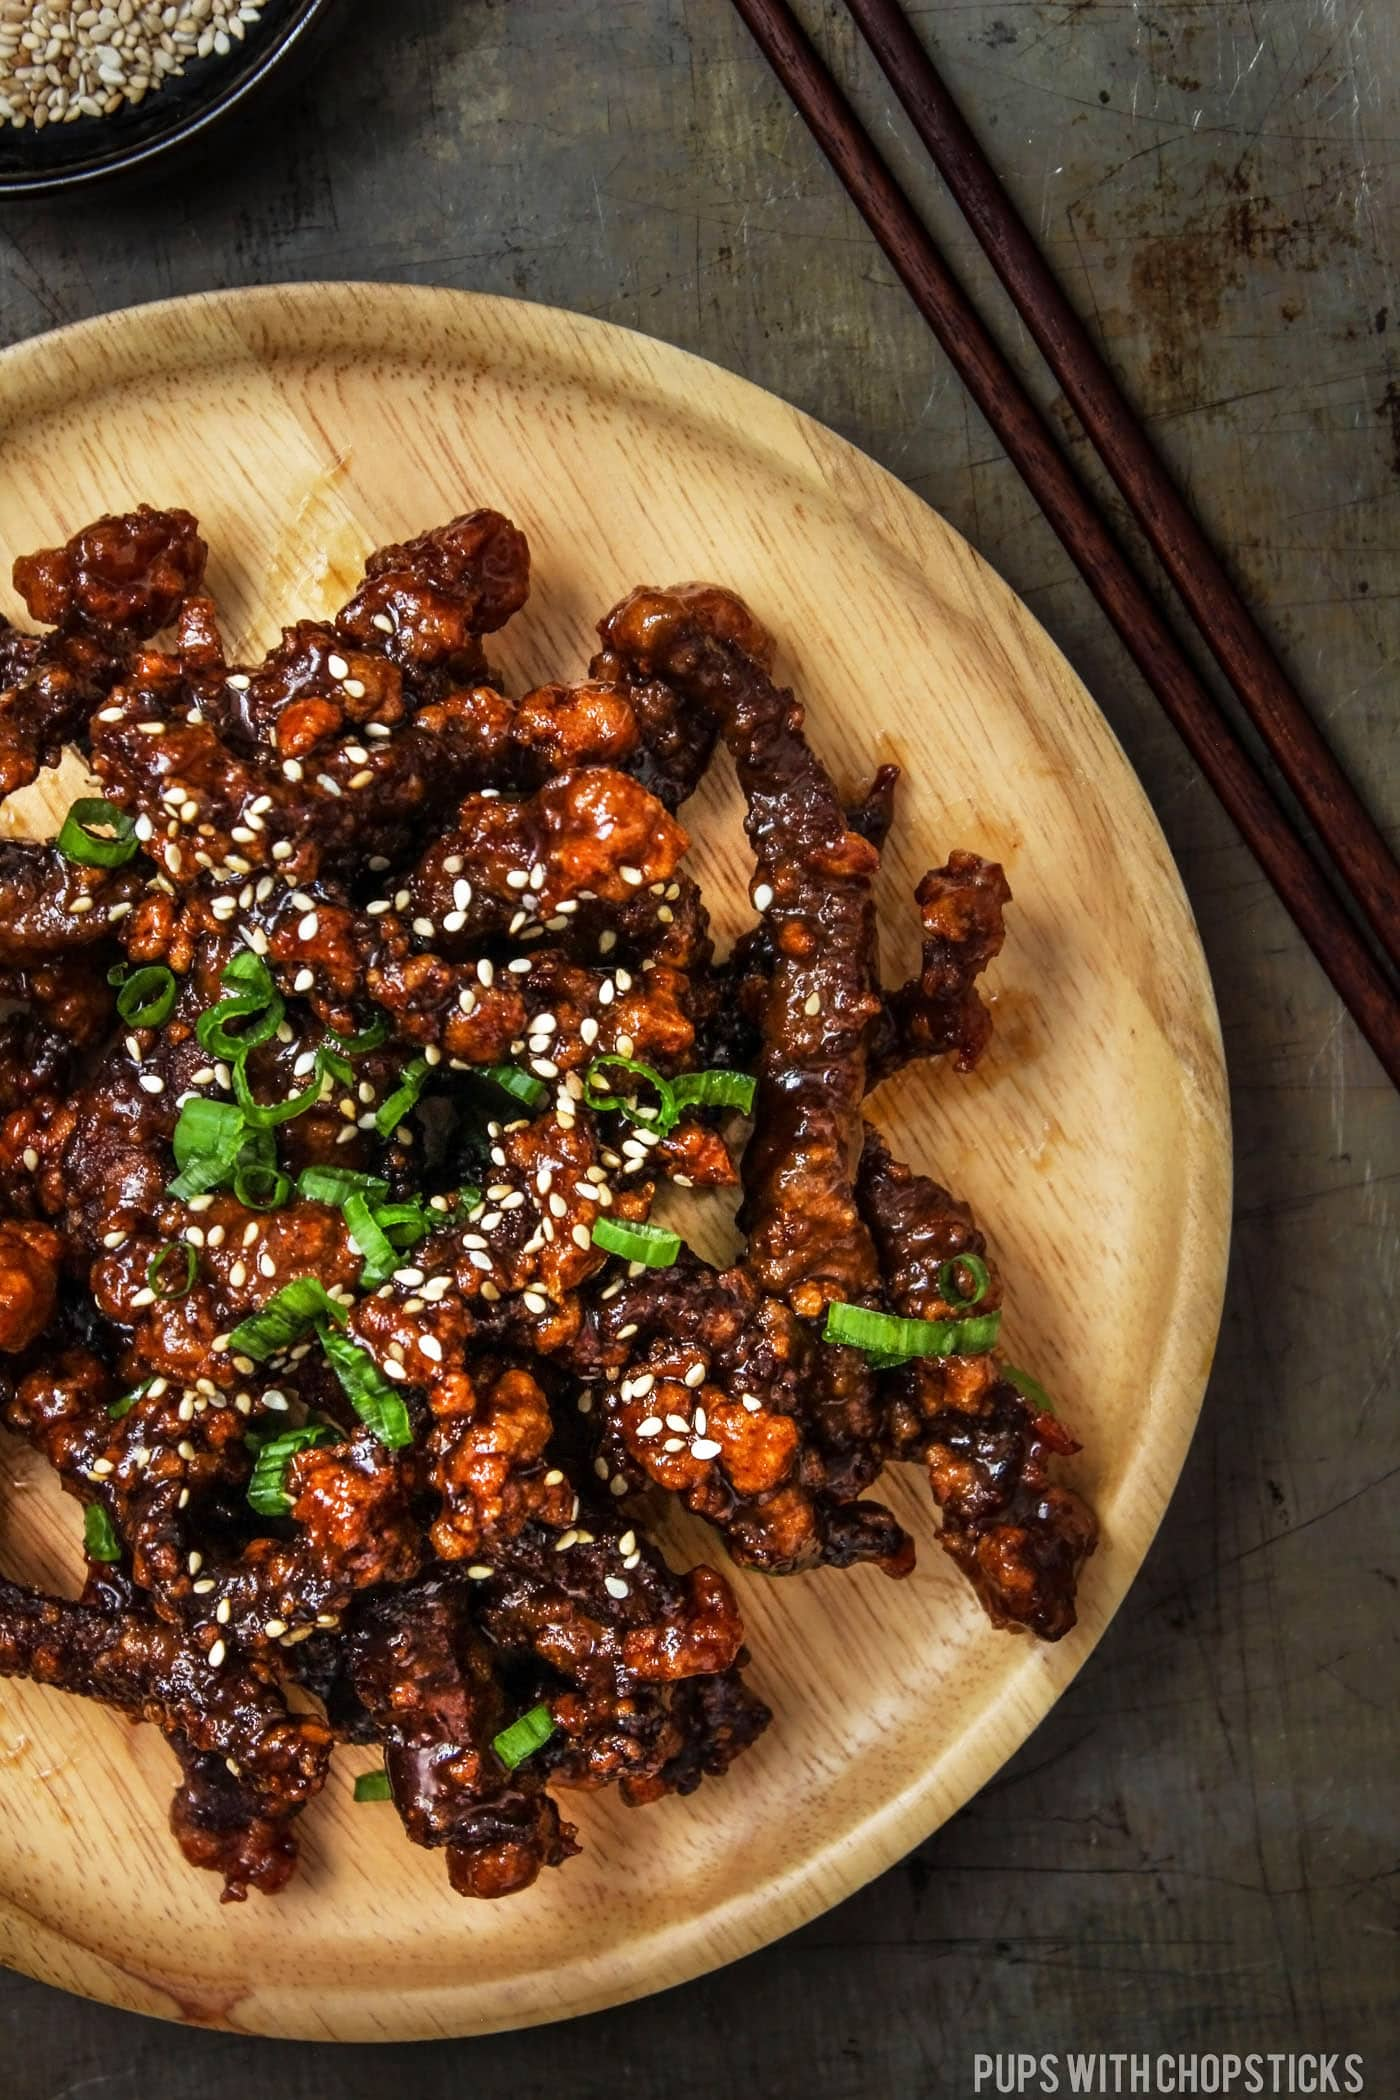 Super crispy beef tossed with a sweet and sticky sauce